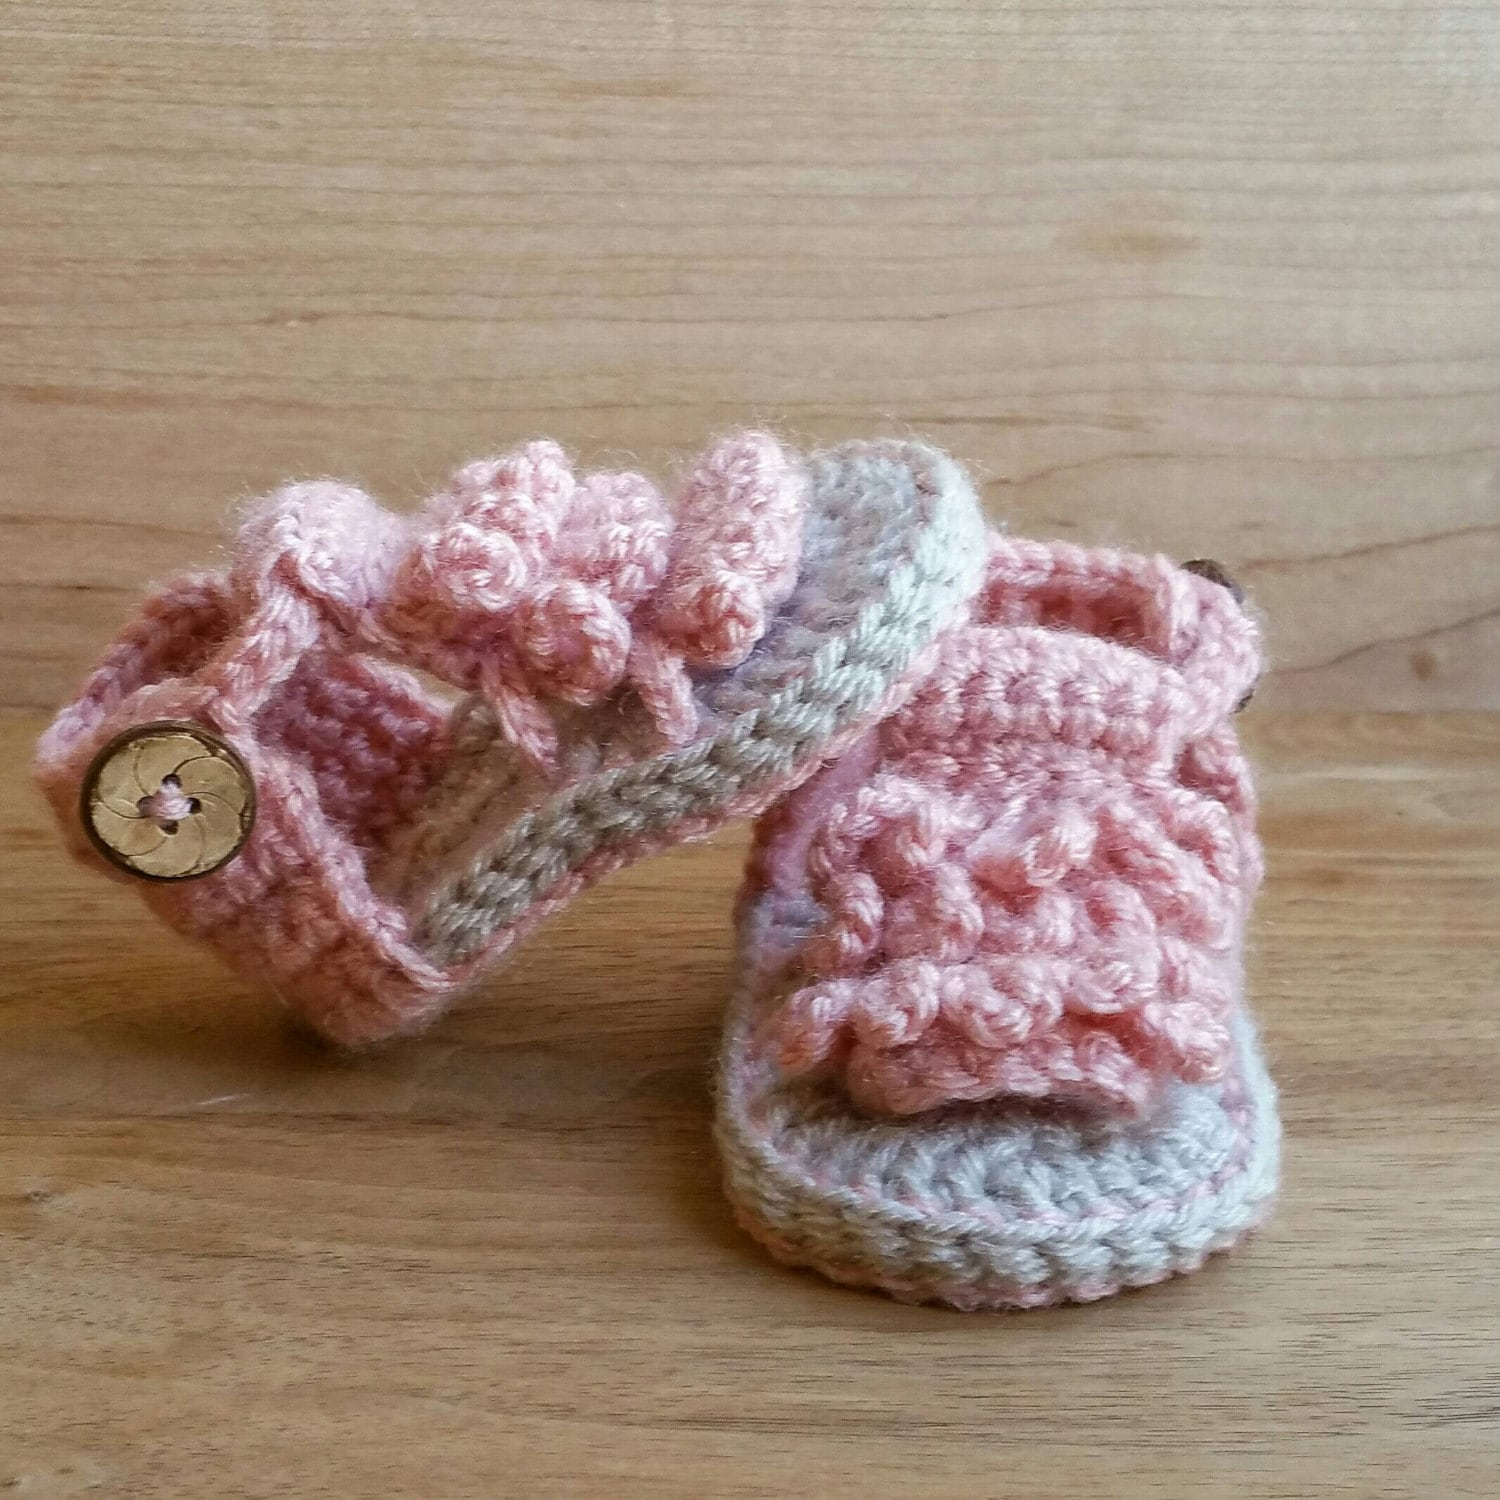 Baby Moccasin Sandals Crochet Baby Sandals Baby Shoes